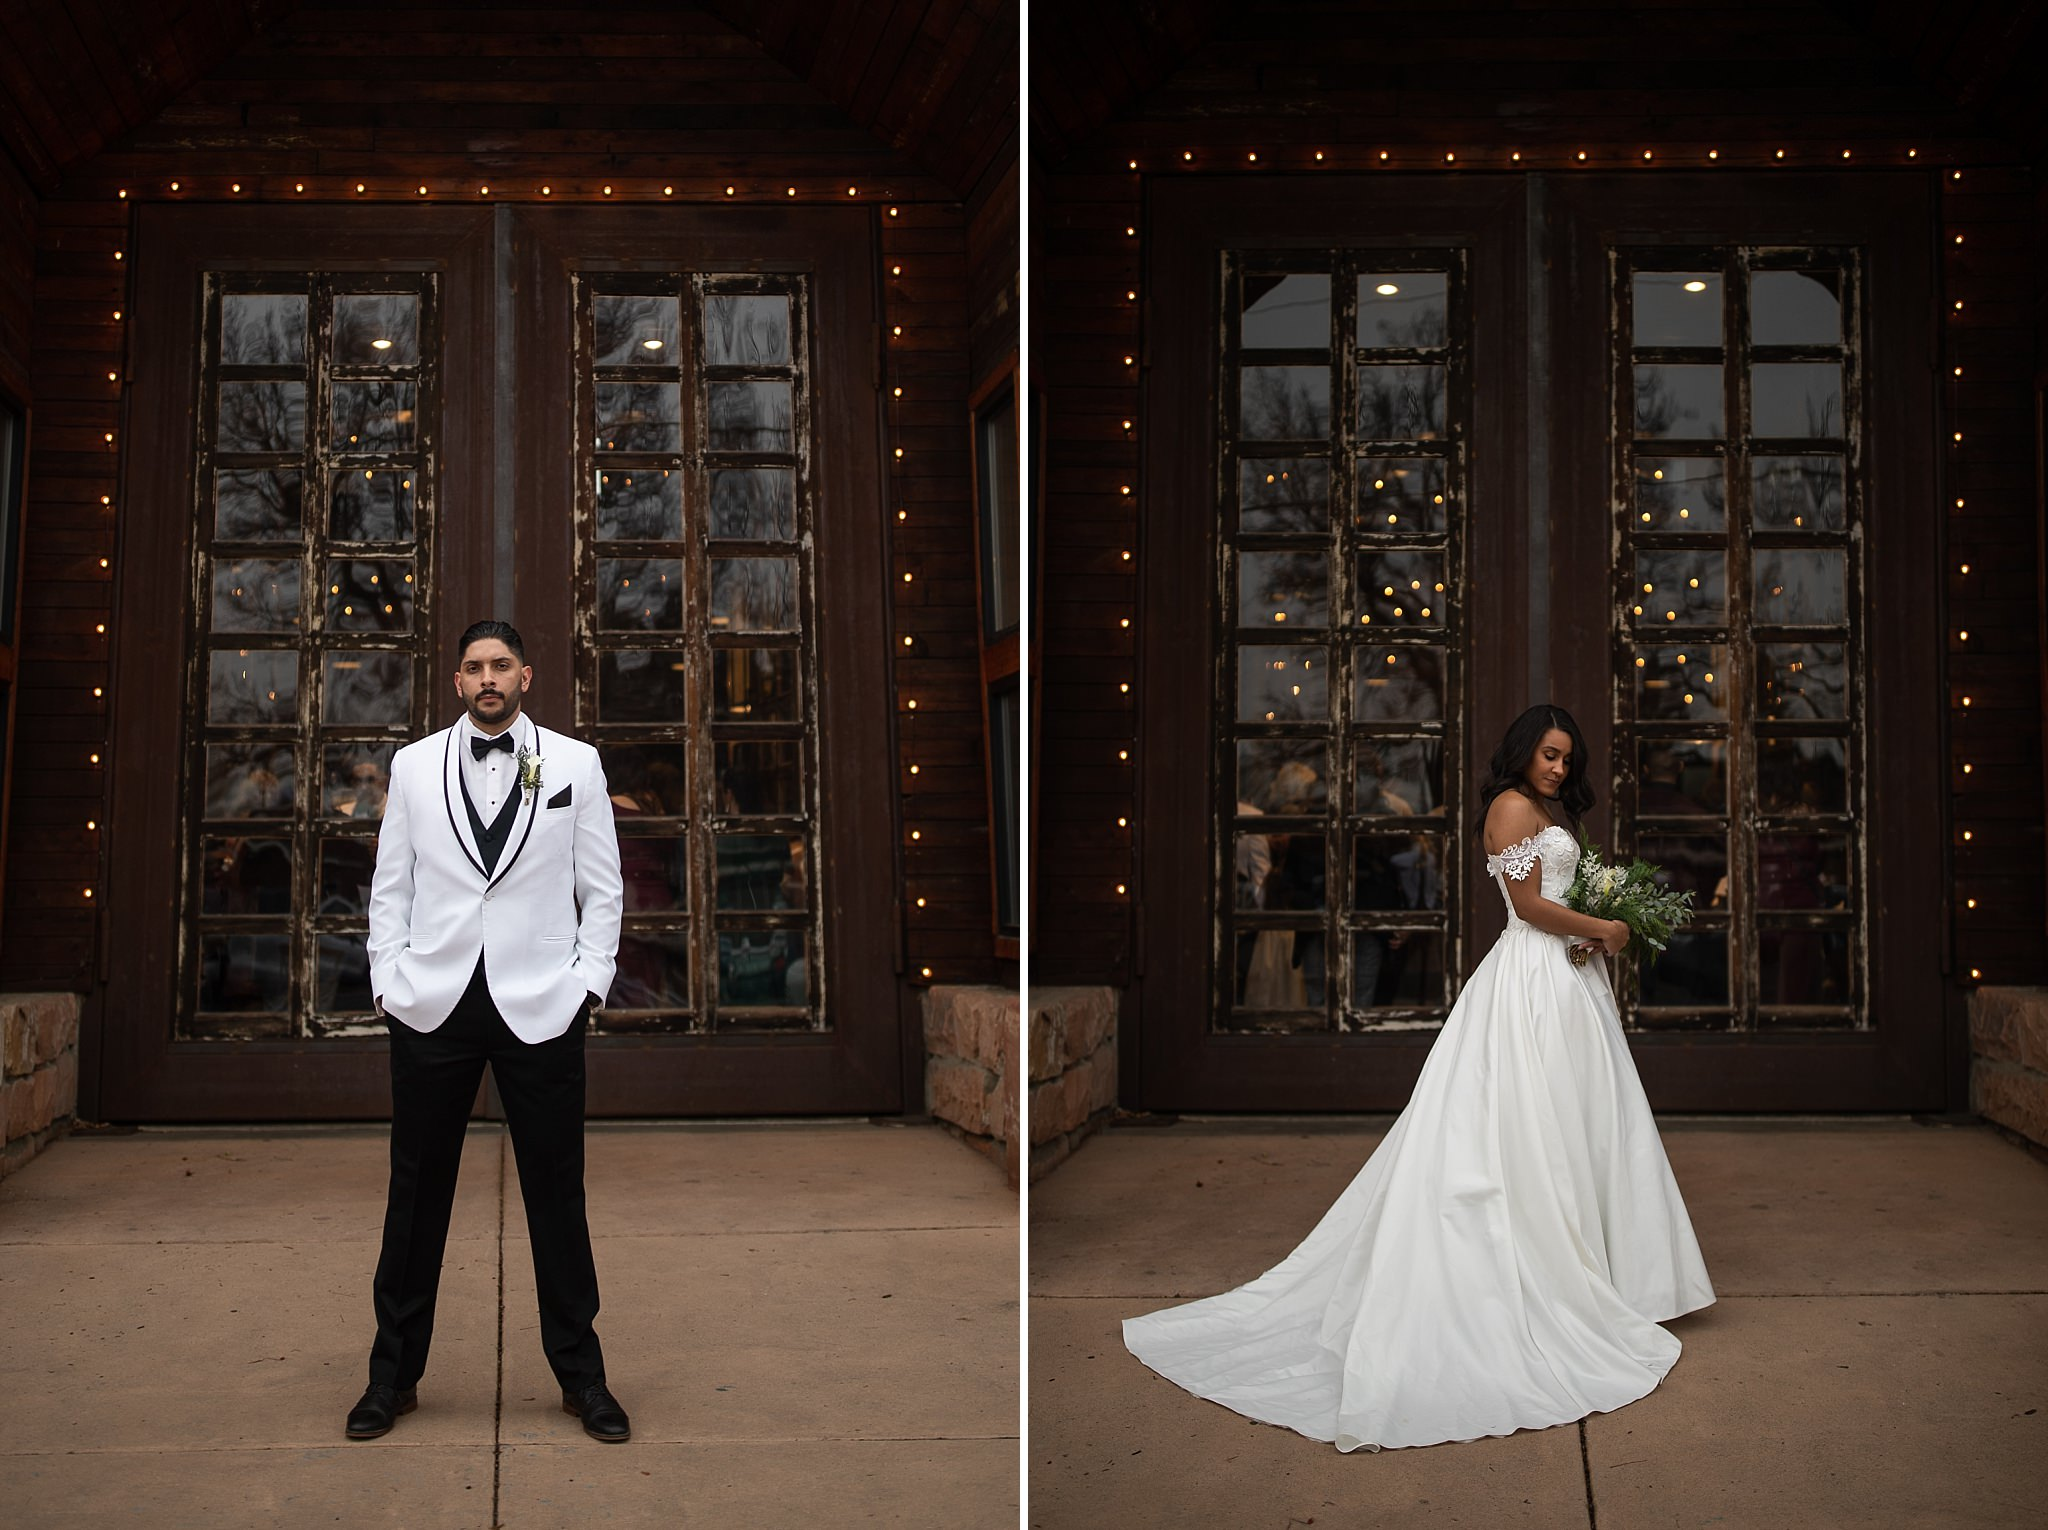 Winter Wedding Formal Portraits